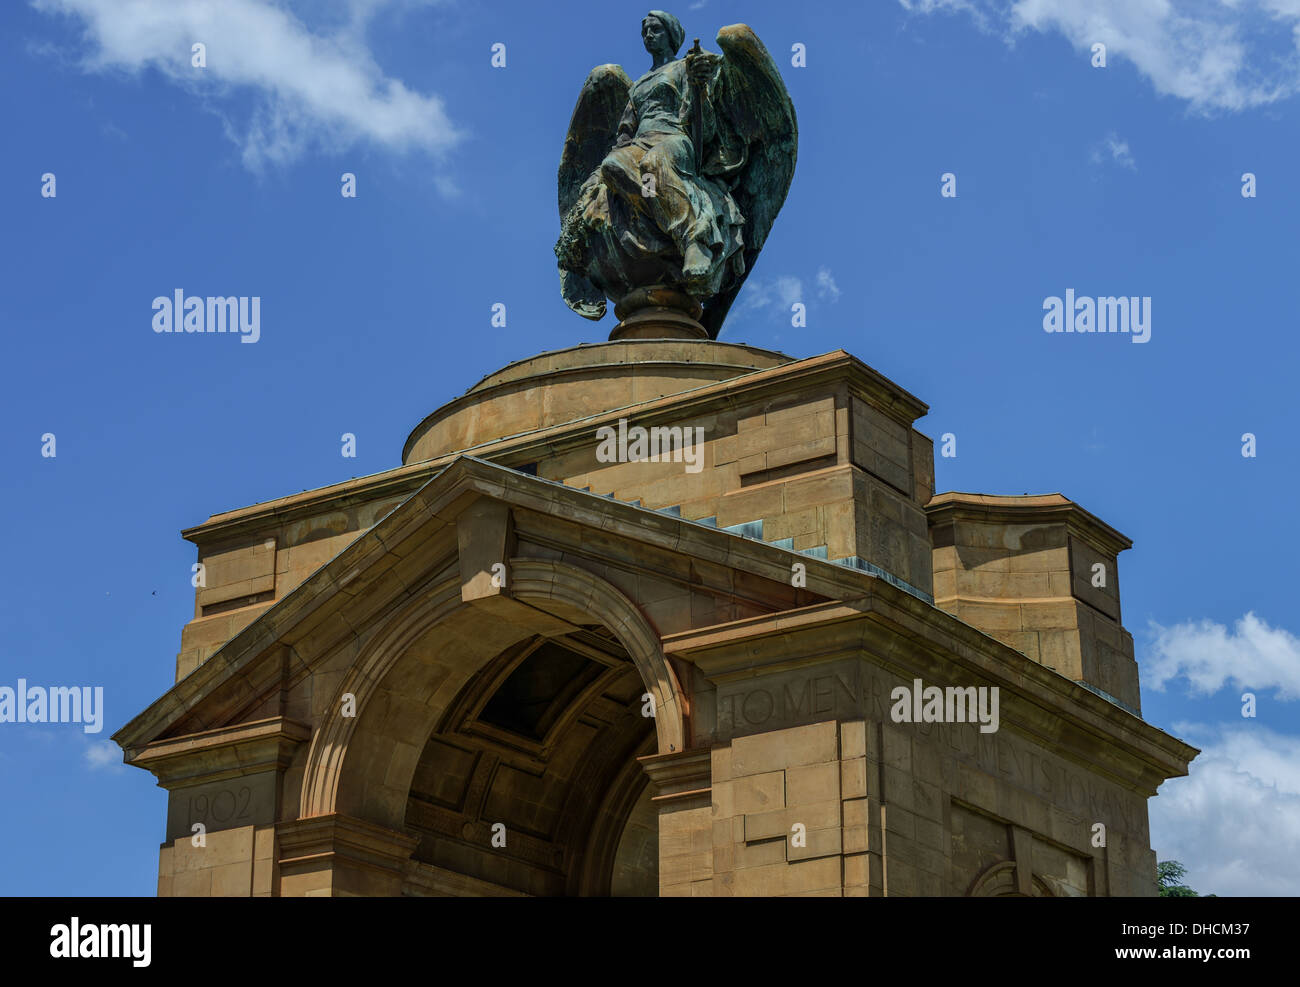 The Anglo-Boer War Memorial. On the grounds of the Museum of Military History in Saxonwold, Johannesburg. - Stock Image